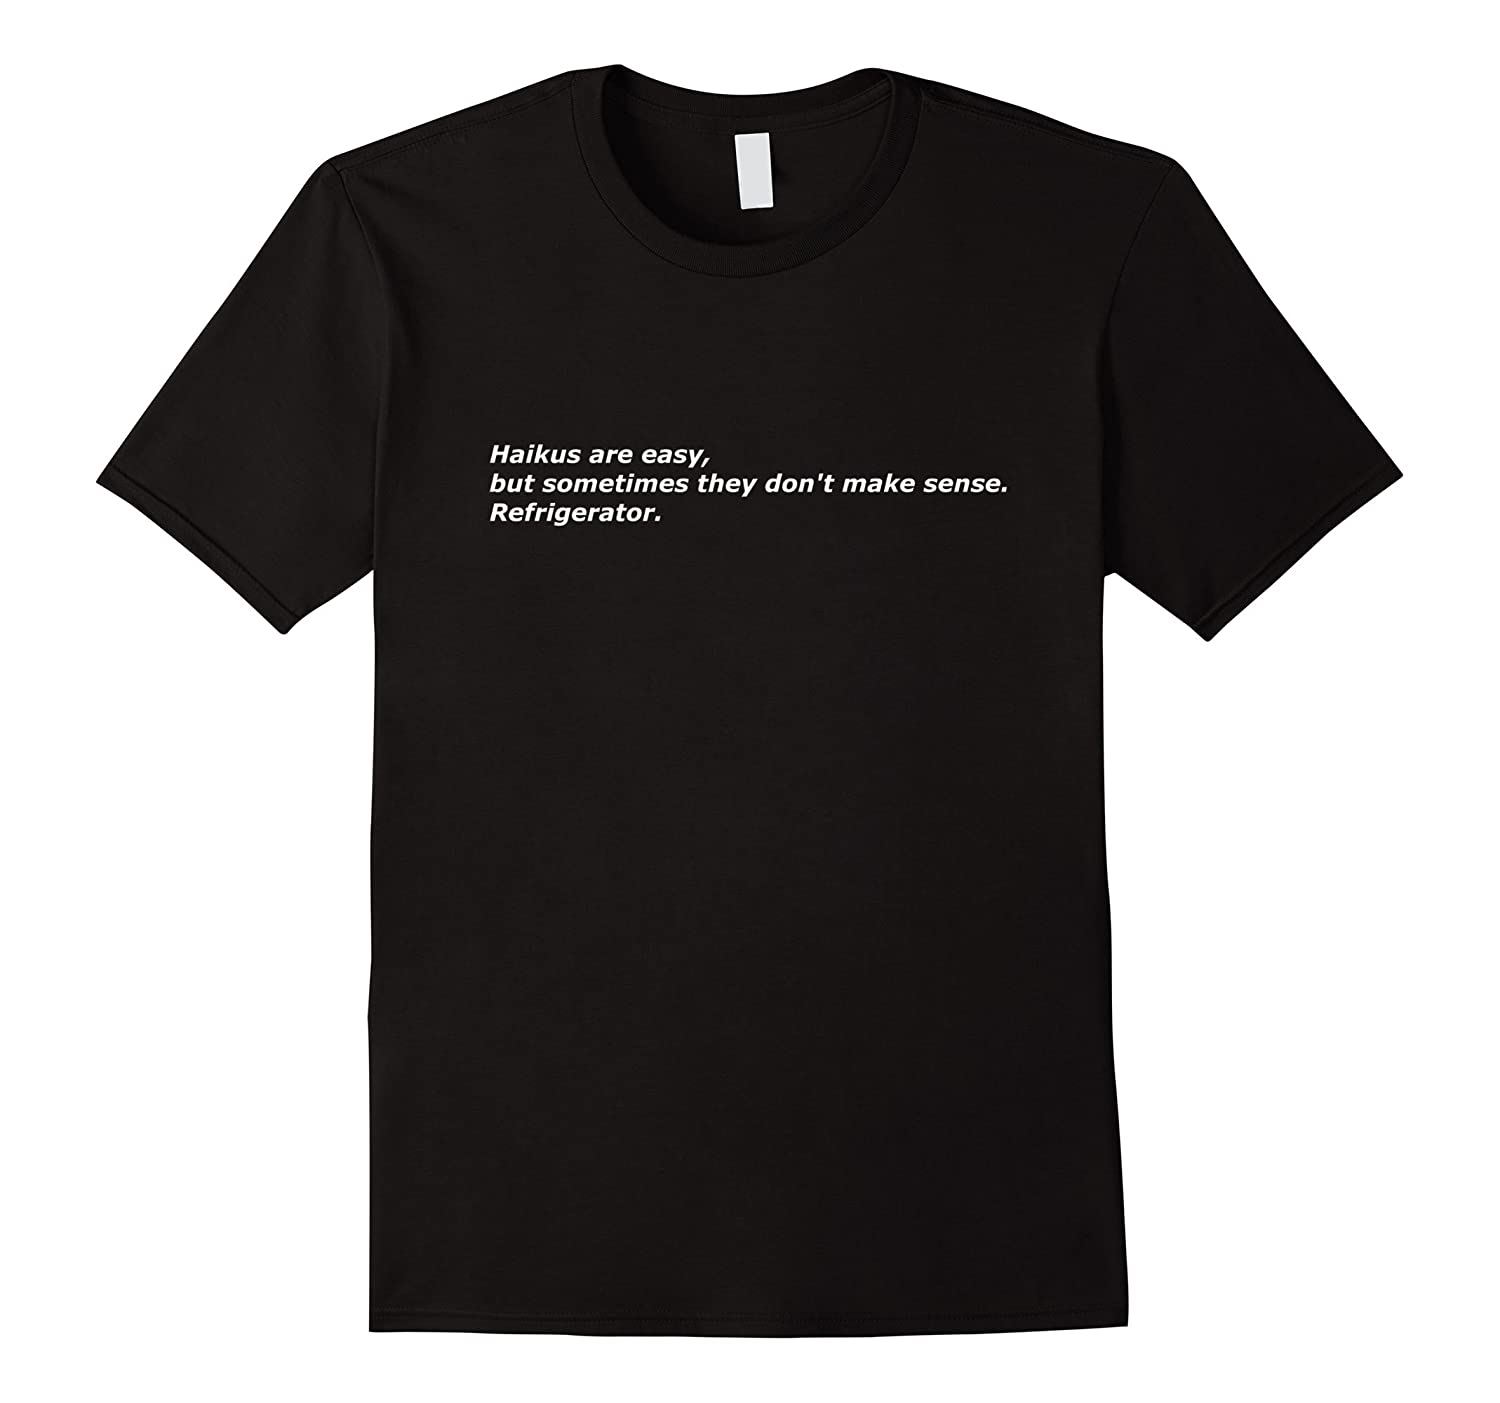 1a10ffc07 Haikus are easy, refrigerator joke - Funny Shirt White Text-ANZ ...